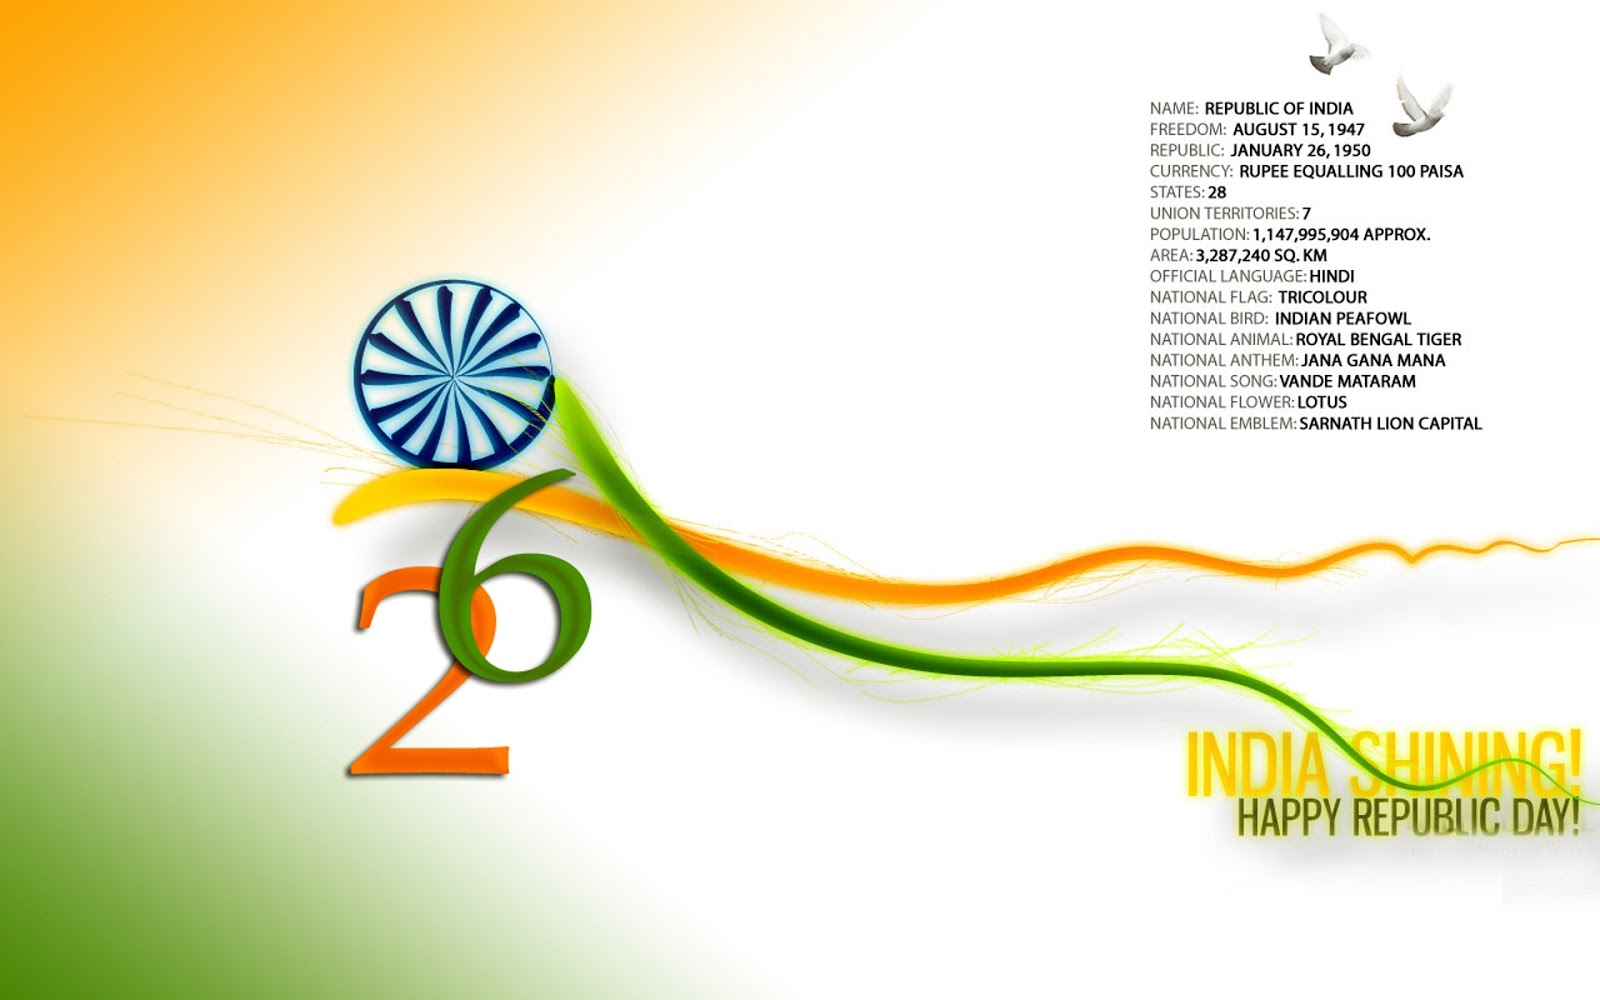 Republic Day Images Happy Diwali Images Wallpapers Photos Pictures